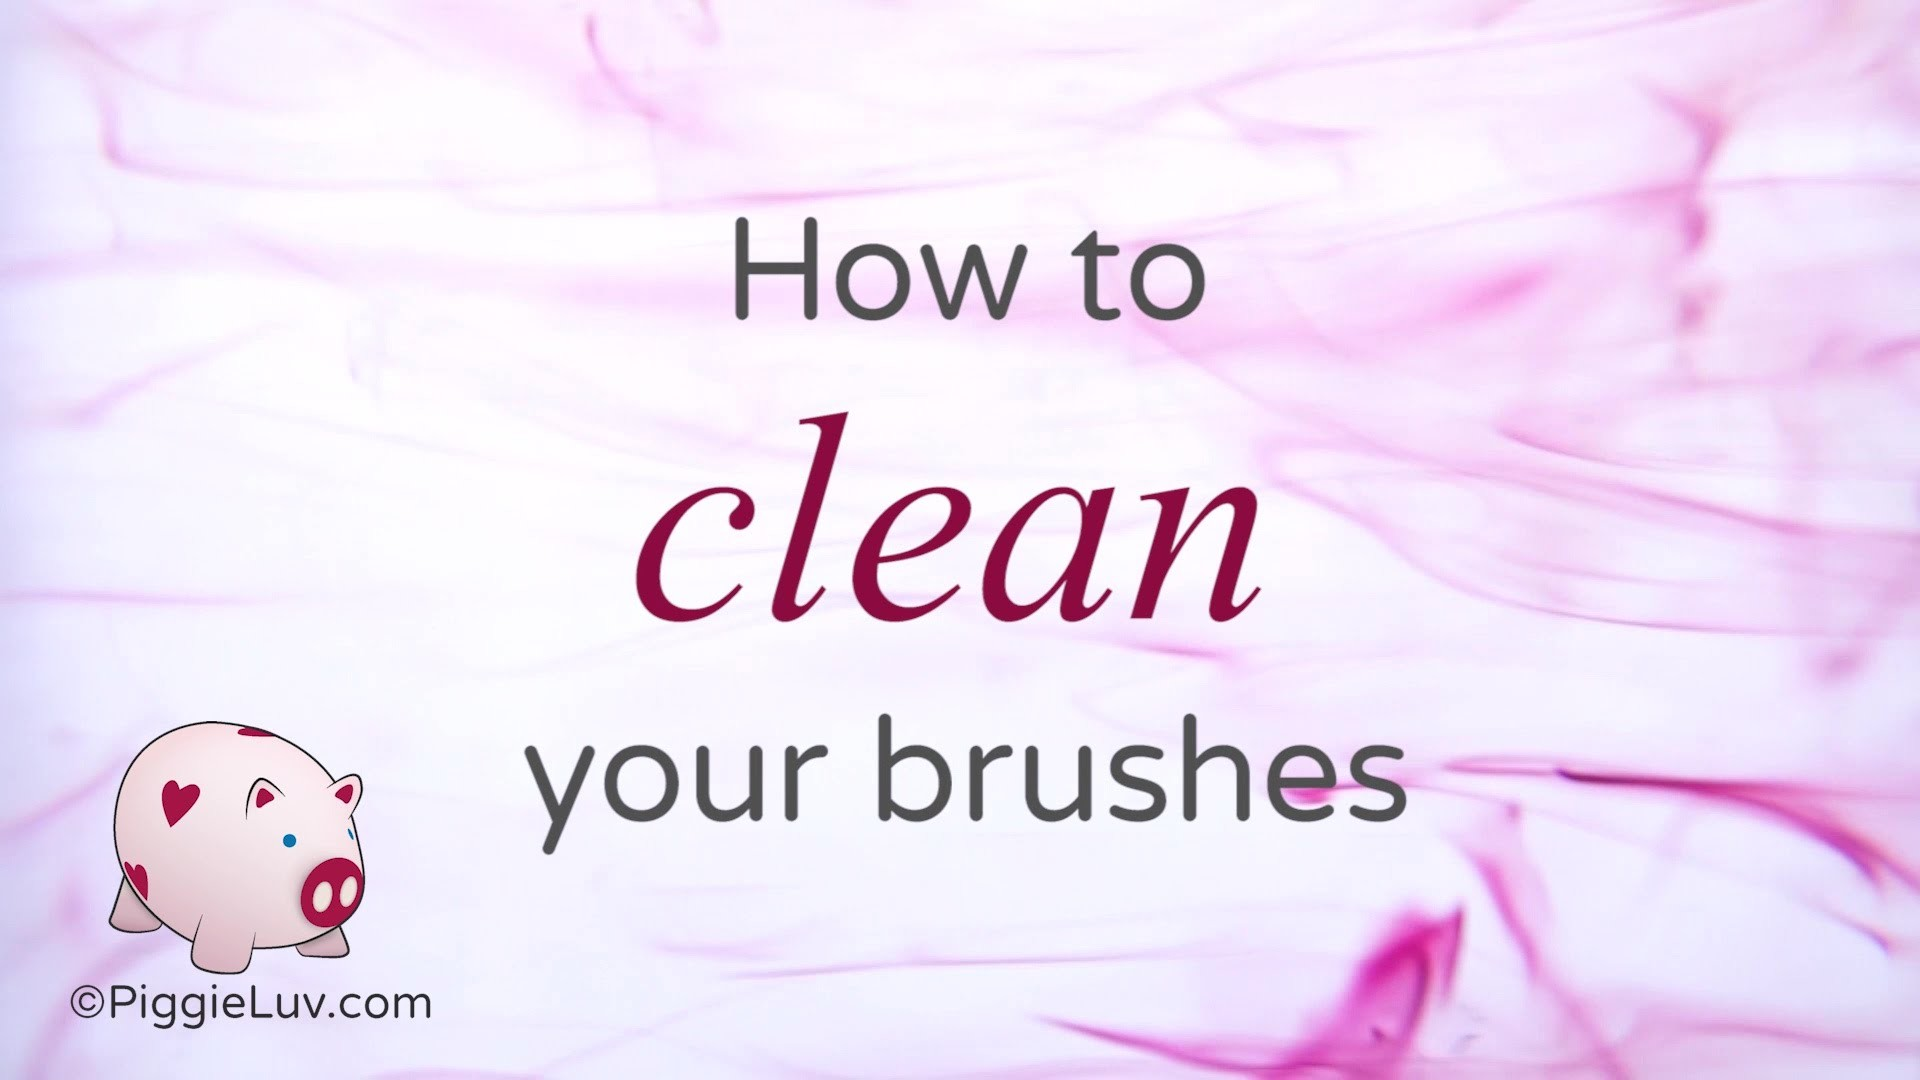 How to care for your nail art brushes